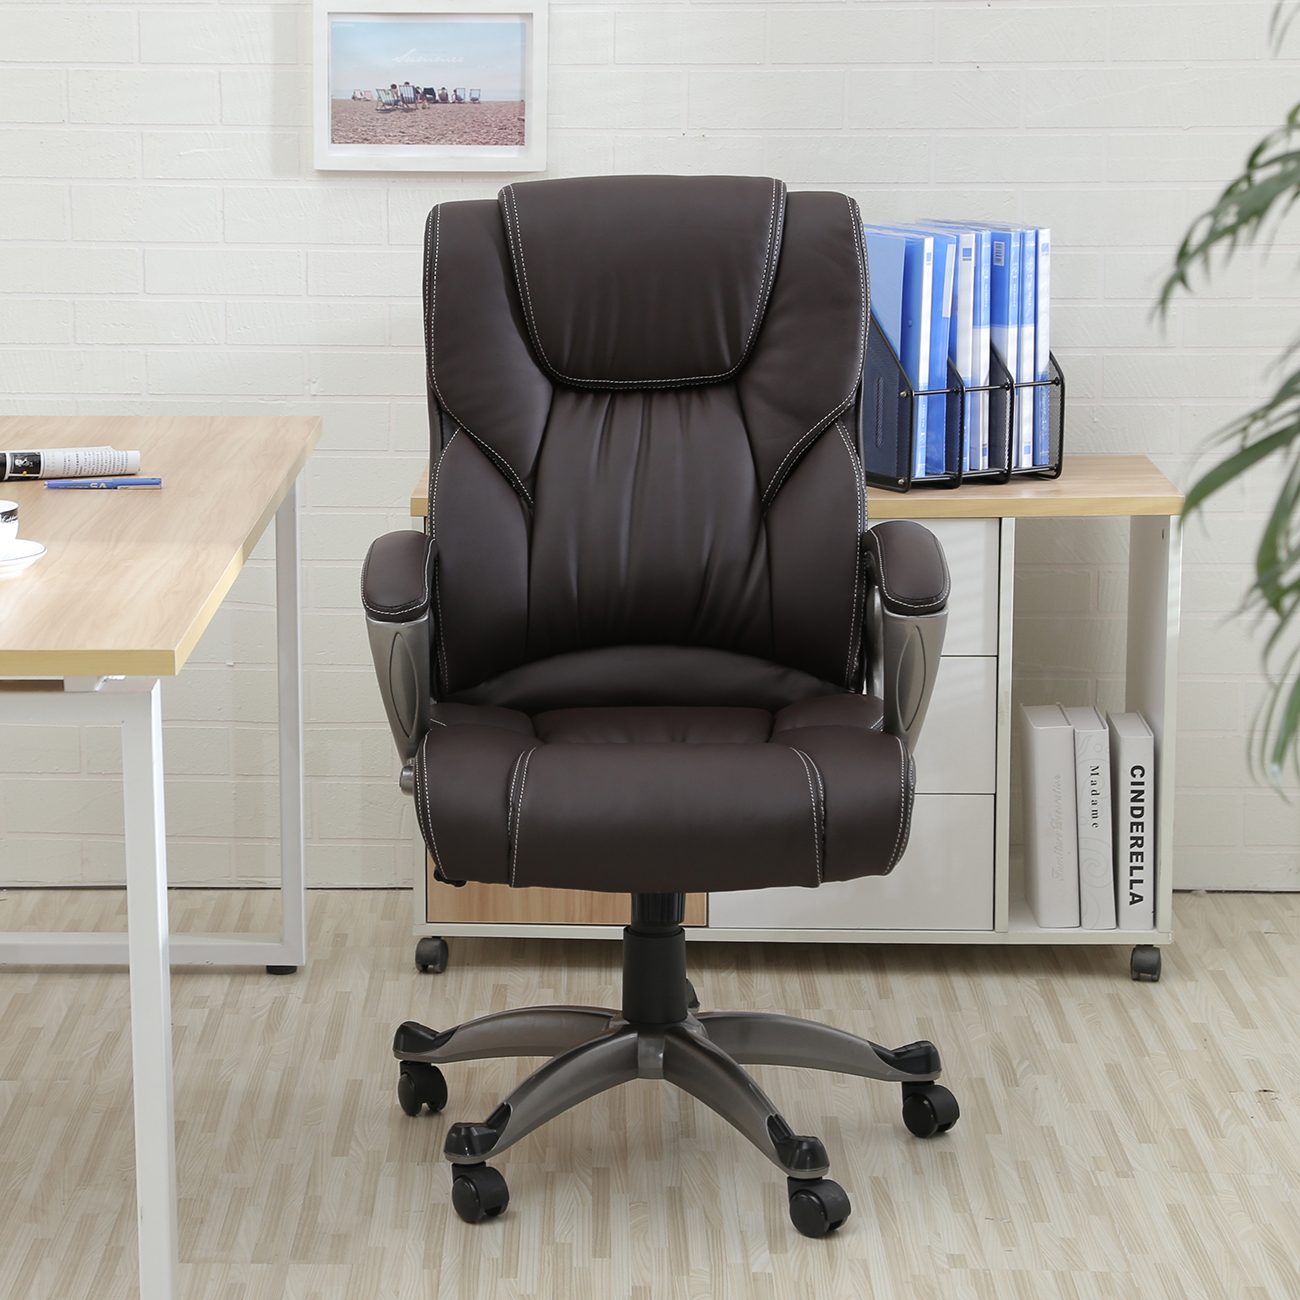 Office Chair Deals Belleze Executive High Back Leather Chair Desk Comuter